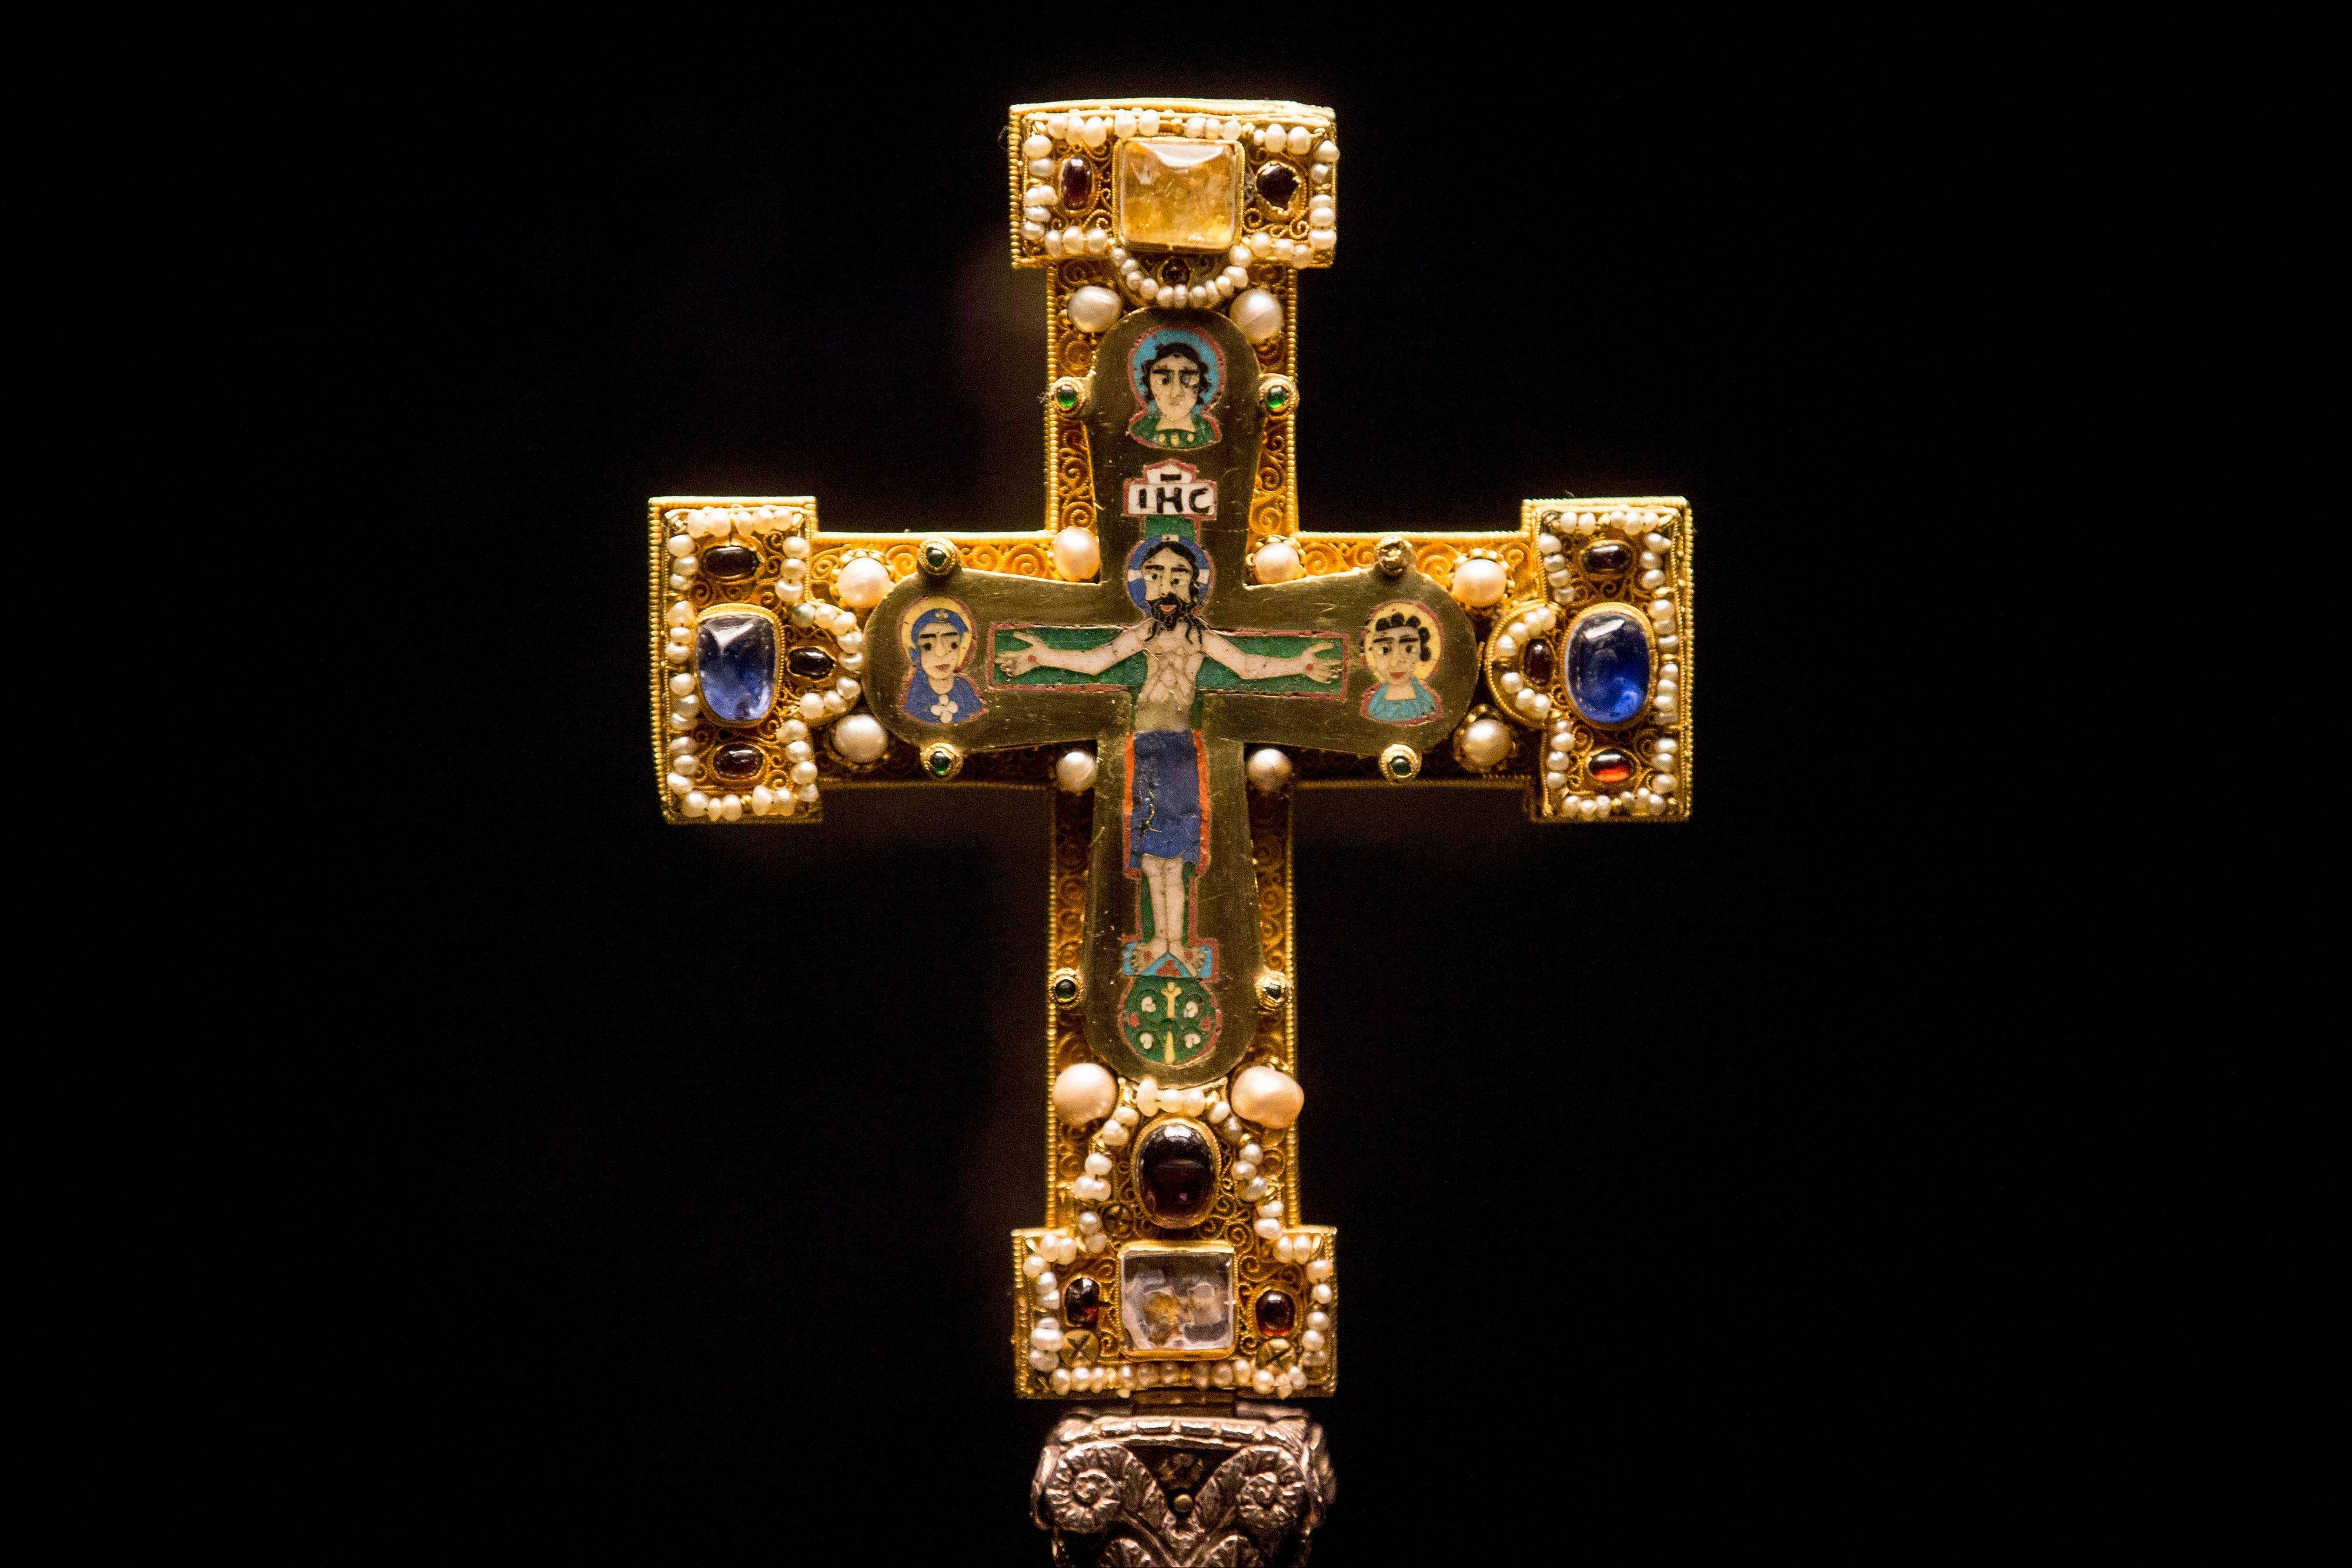 A medieval Cross, part of the Welfenschatz, at the Bode Museum in Berlin.